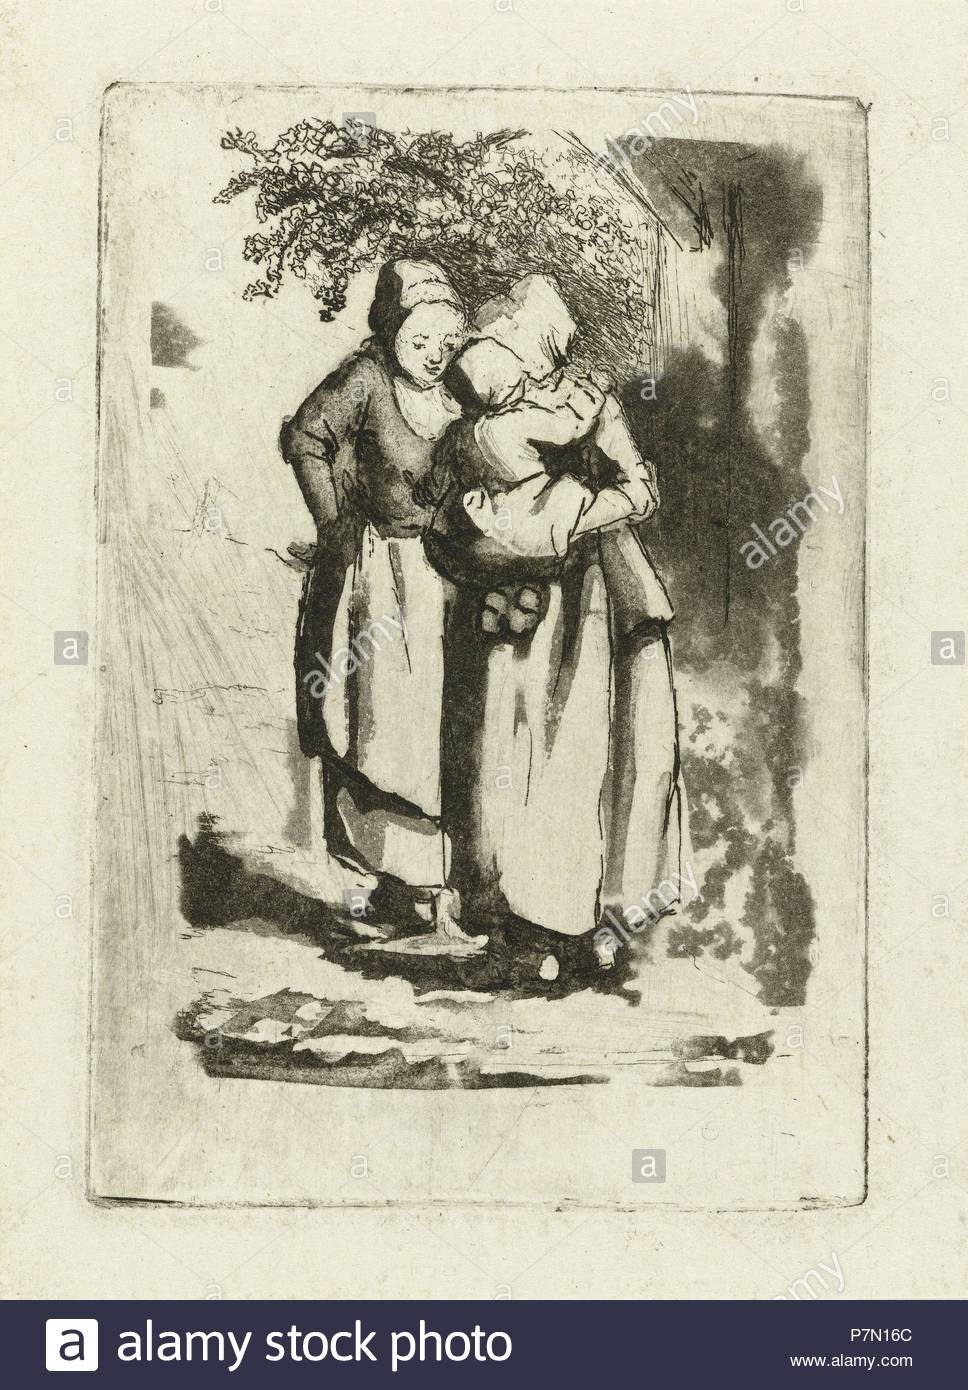 Two standing peasant women, one with a child on her arm, Marie Lambertine Coclers, 1776 - 1815. - Stock Image